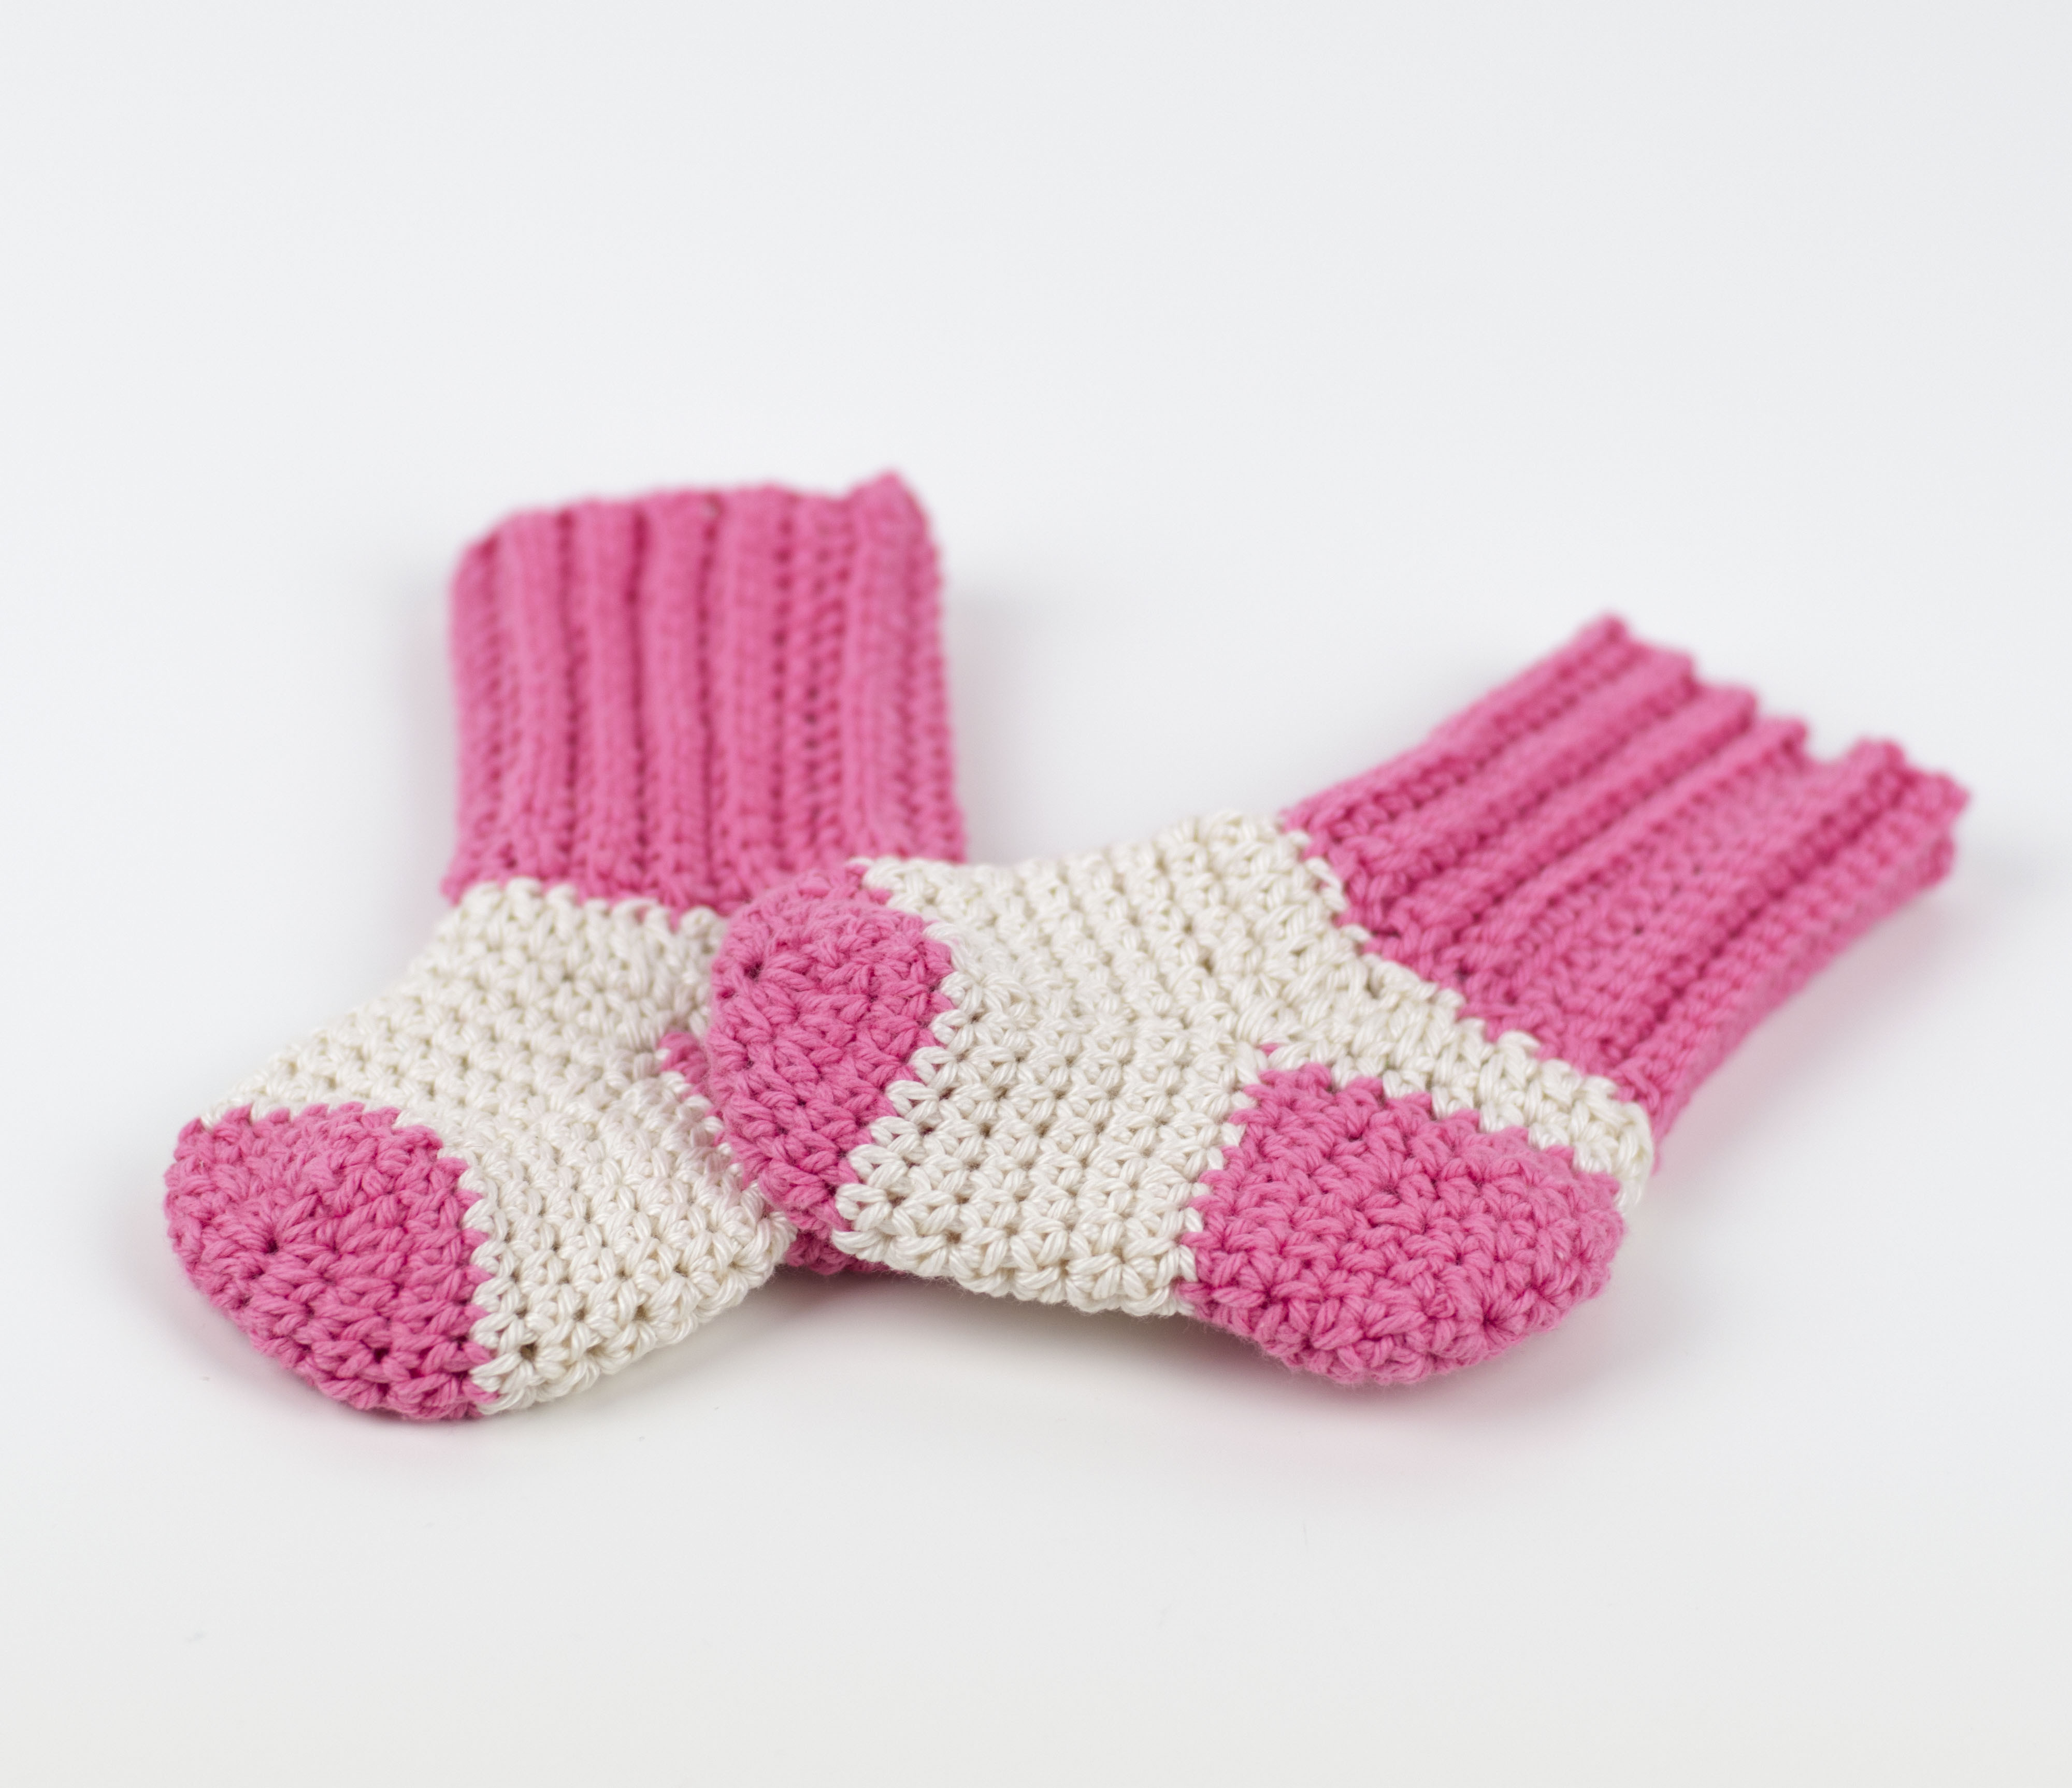 Patterned socks Beautiful Free Pattern Tiny socks for Tiny Feet – Croby Patterns Of Superb 48 Images Patterned socks